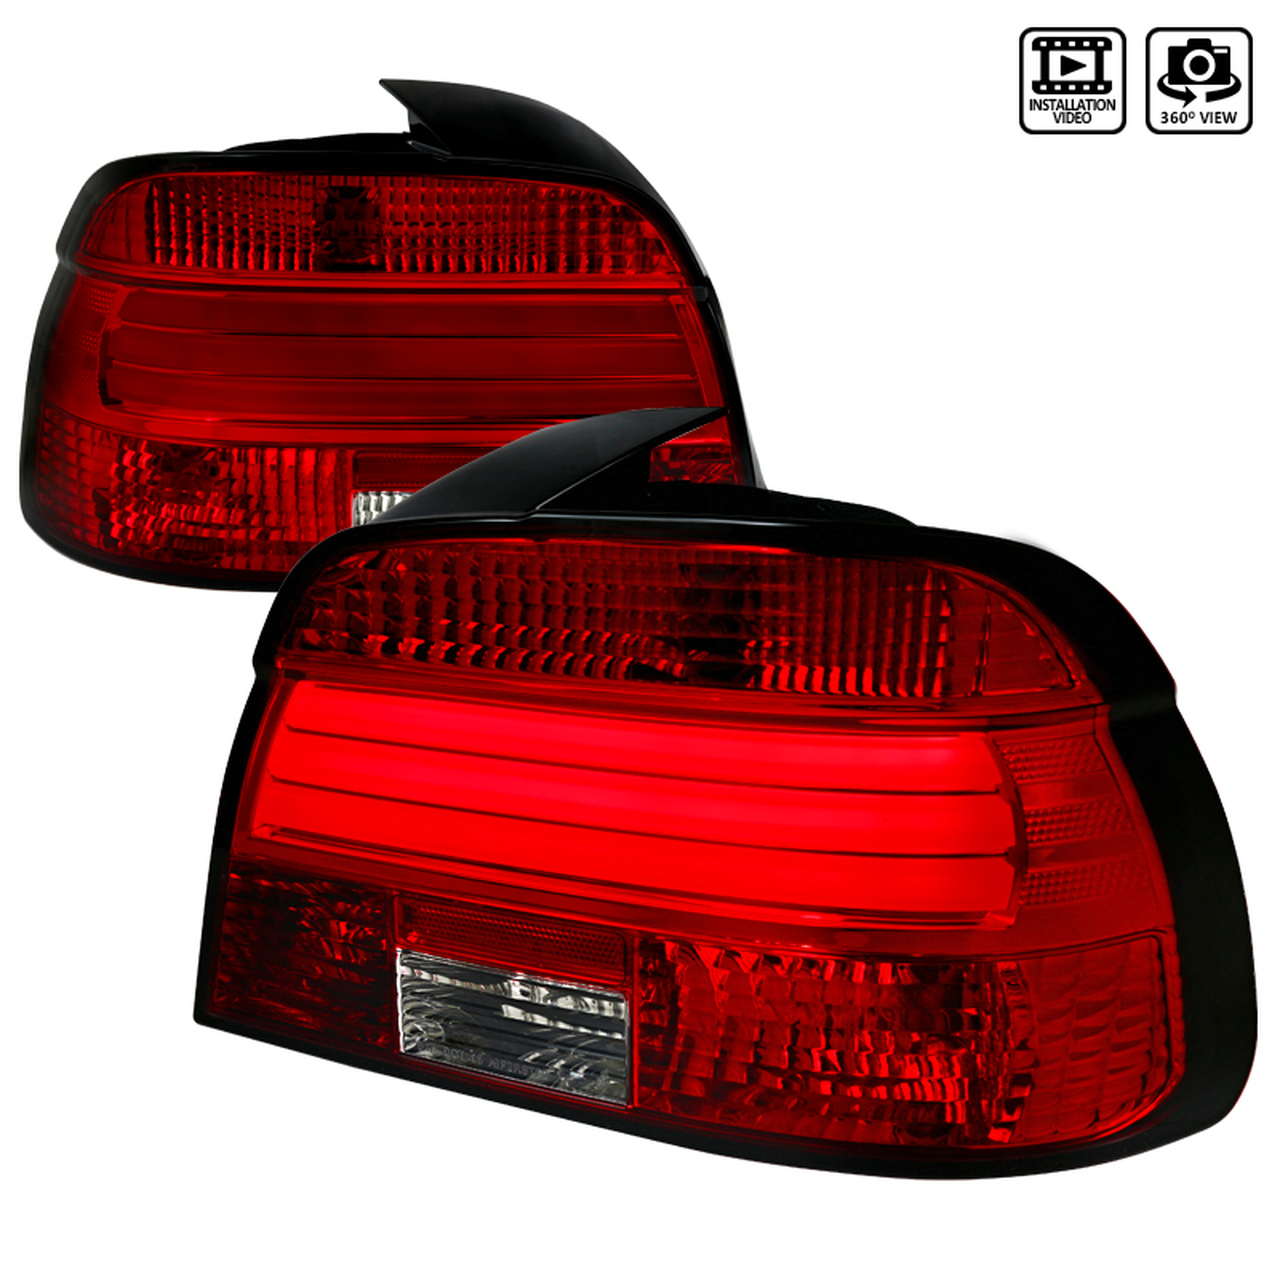 Spec-D Tuning Red LED Tail Lights - Spec-D Tuning LT-E3901RLED-TM